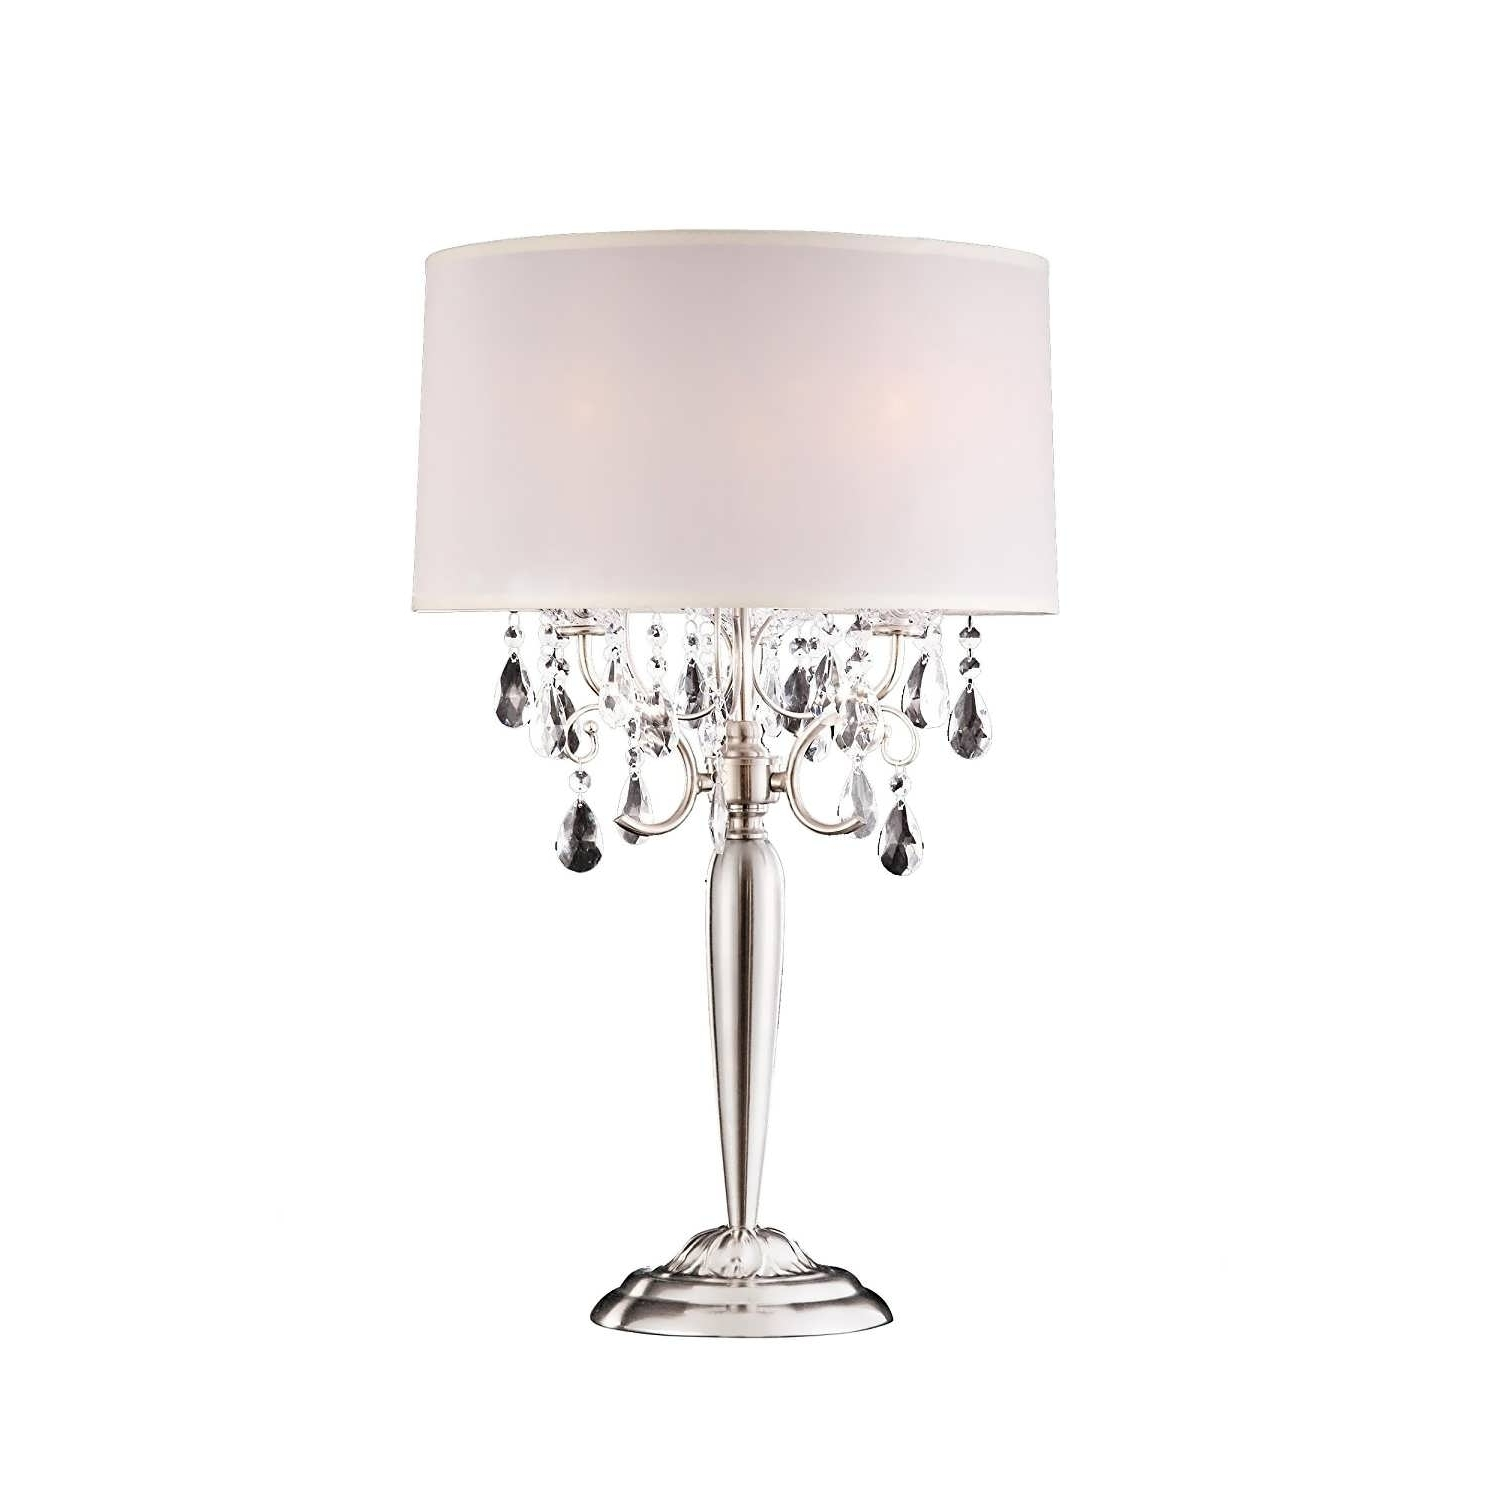 Chandelier Night Stand Lamps Throughout Most Recently Released Light : Large Table Lamps Contemporary Floor Battery Operated (View 5 of 15)